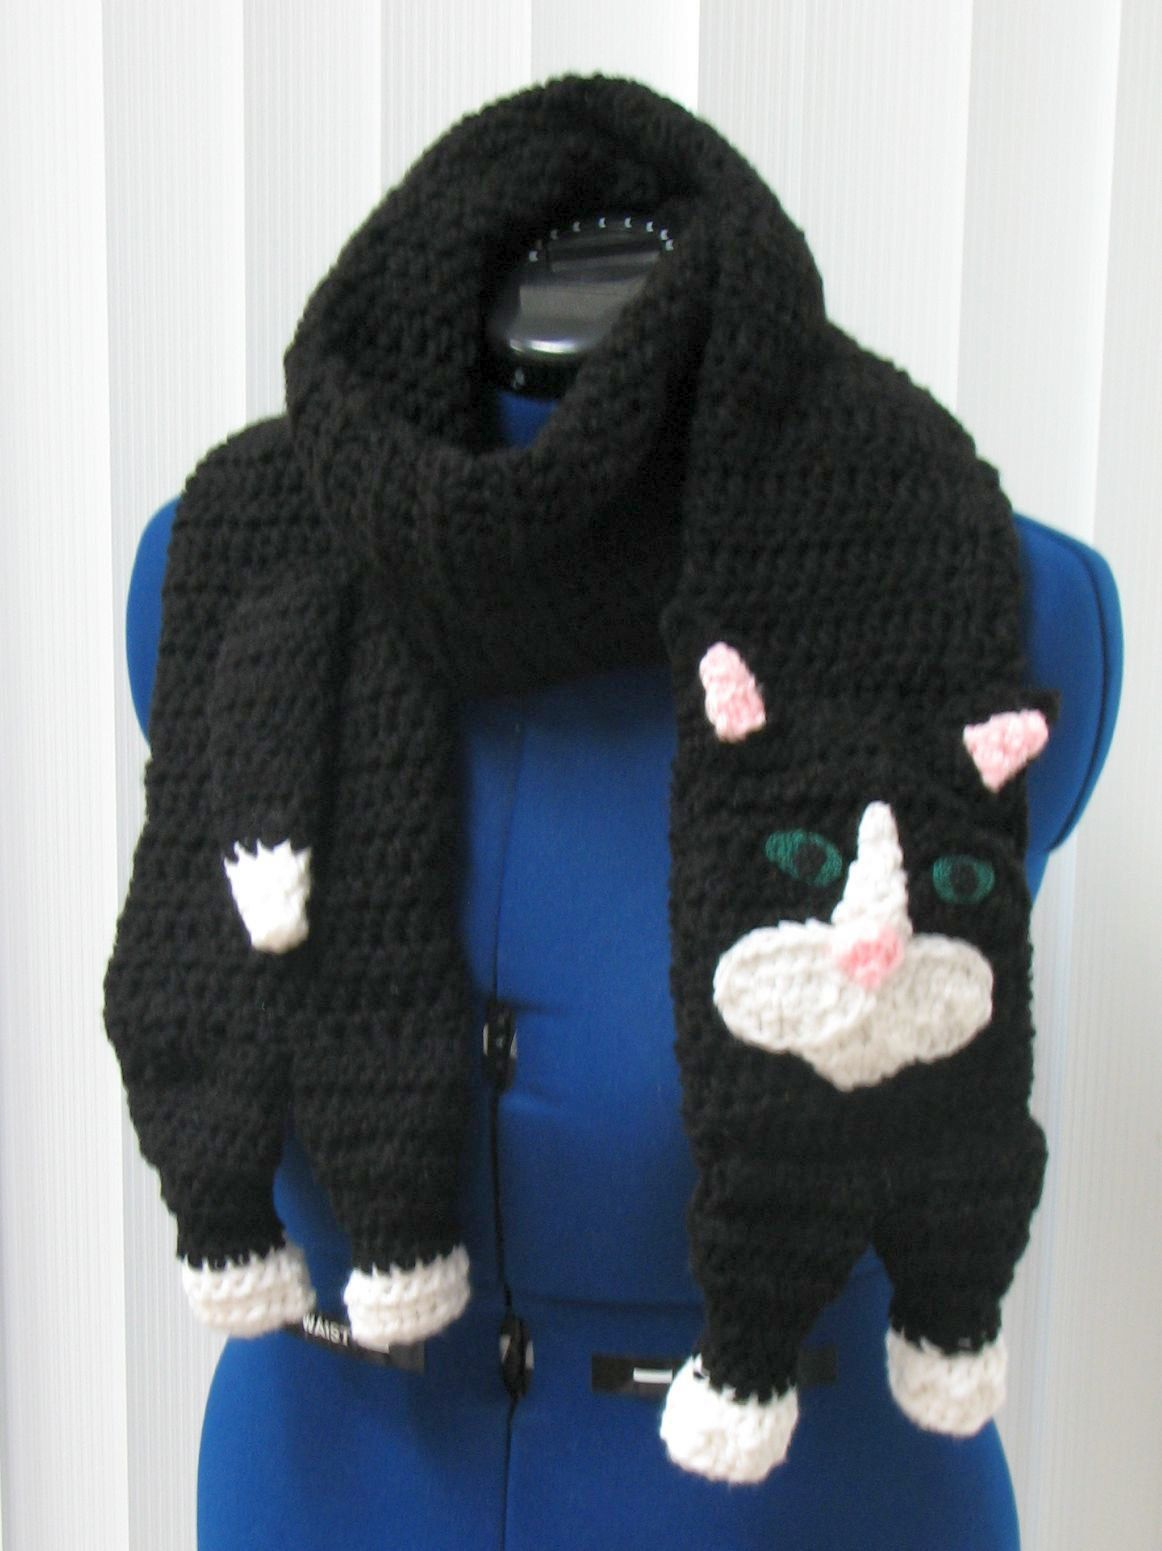 Black Cat Scarf Crochet Pattern With Tutorials Digital Download Half Double Diagram And On Pinterest Easy Animal White